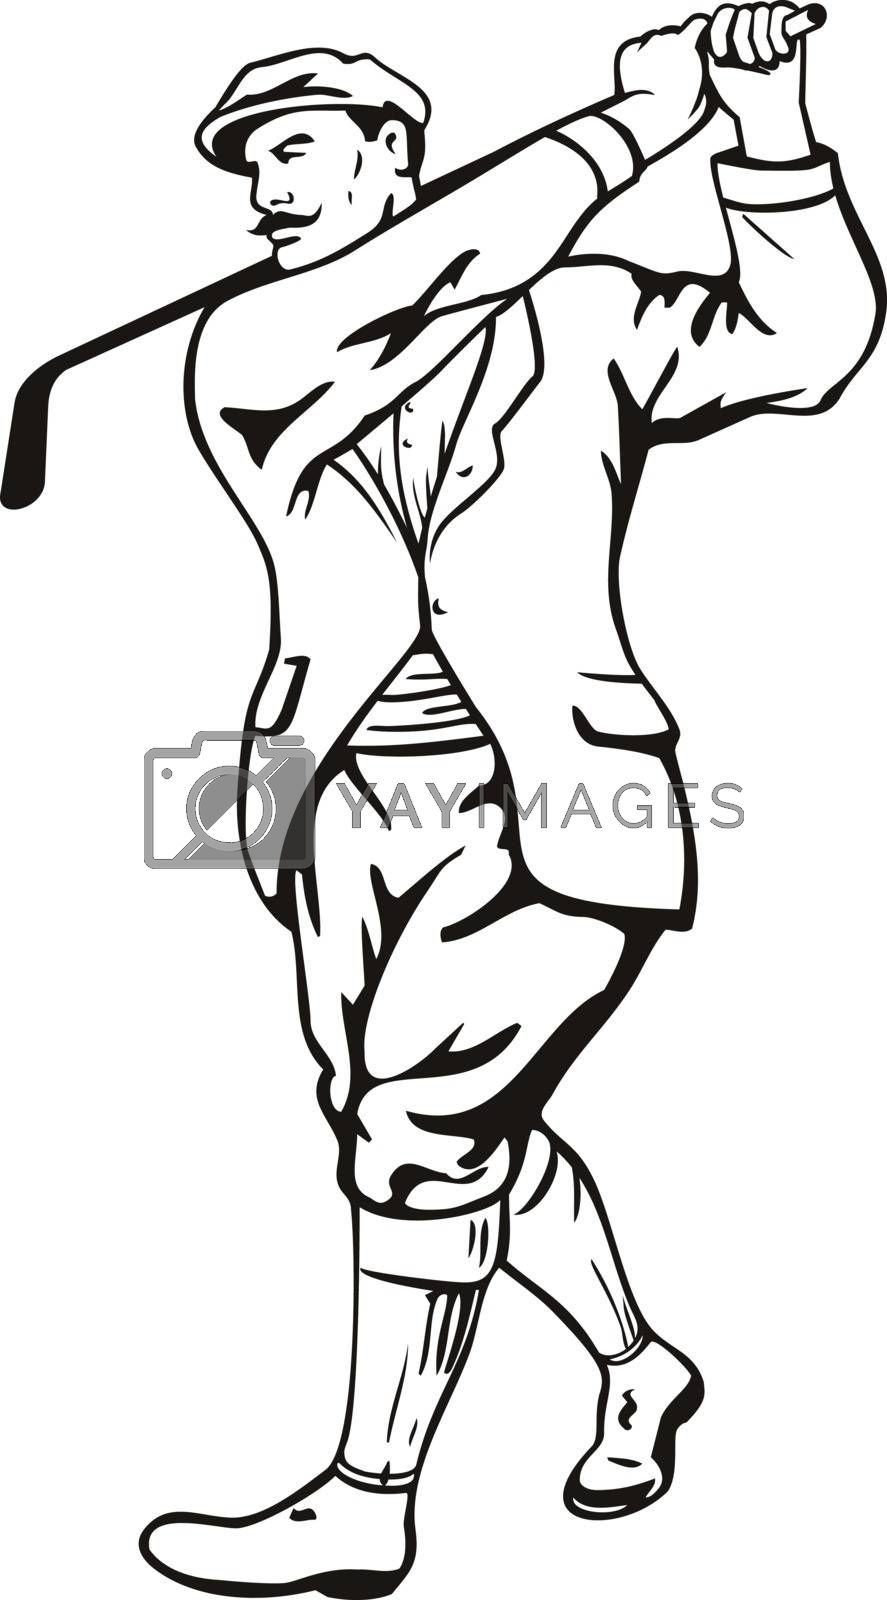 Stencil illustration of a vintage golfer with golf club golfing or teeing off wearing cheese cutter hat or  newsboy cap viewed from front on isolated background done in black and white retro style.